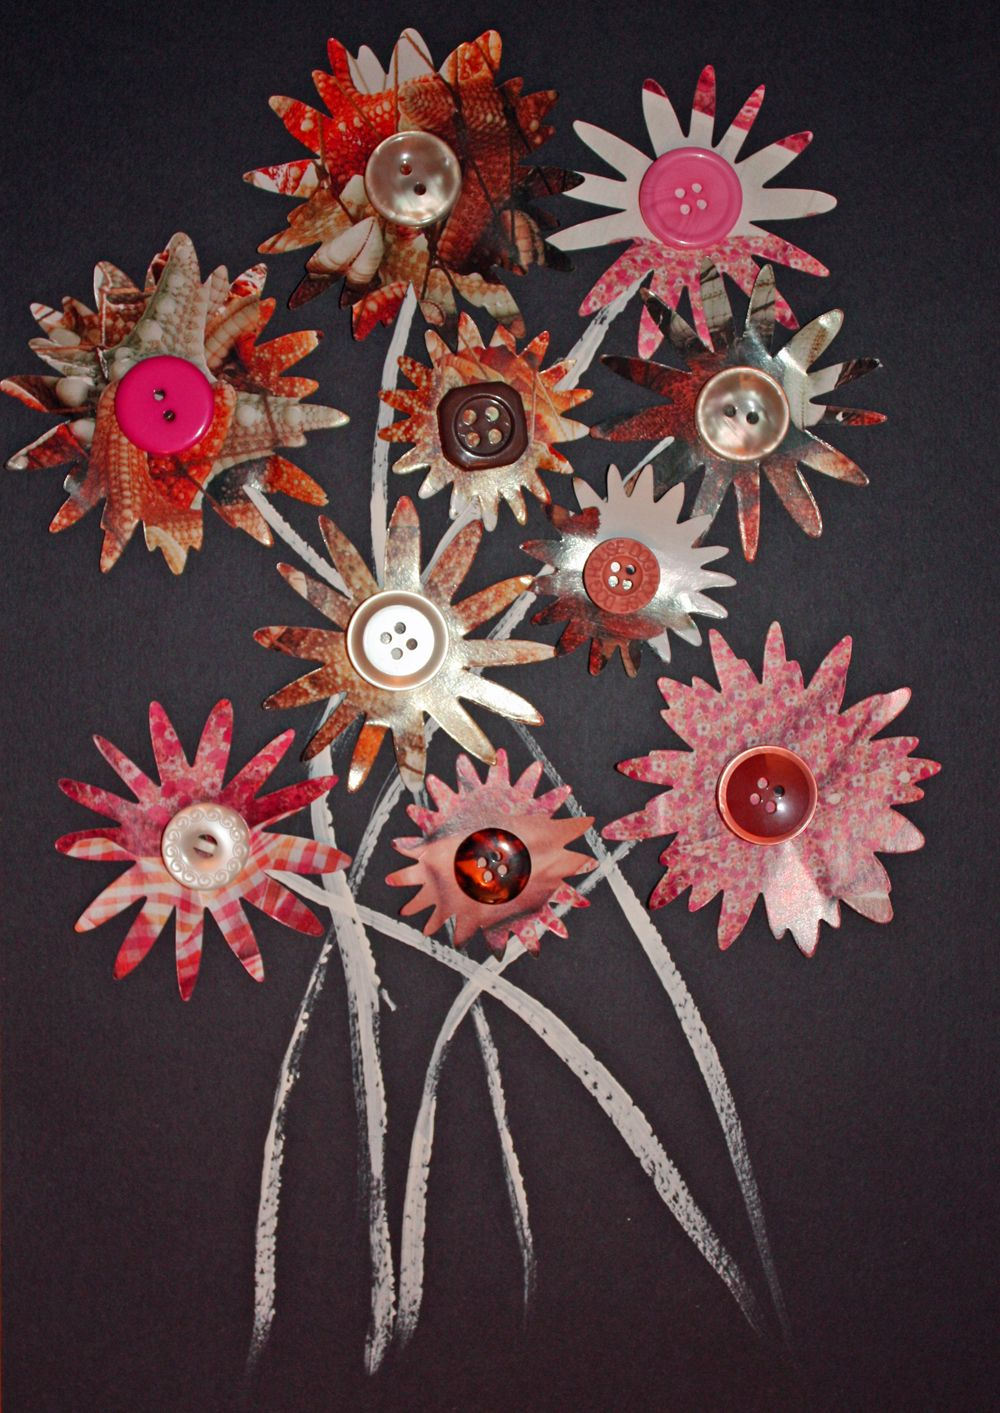 A Blog about easy crafts for the elderly, disabled and